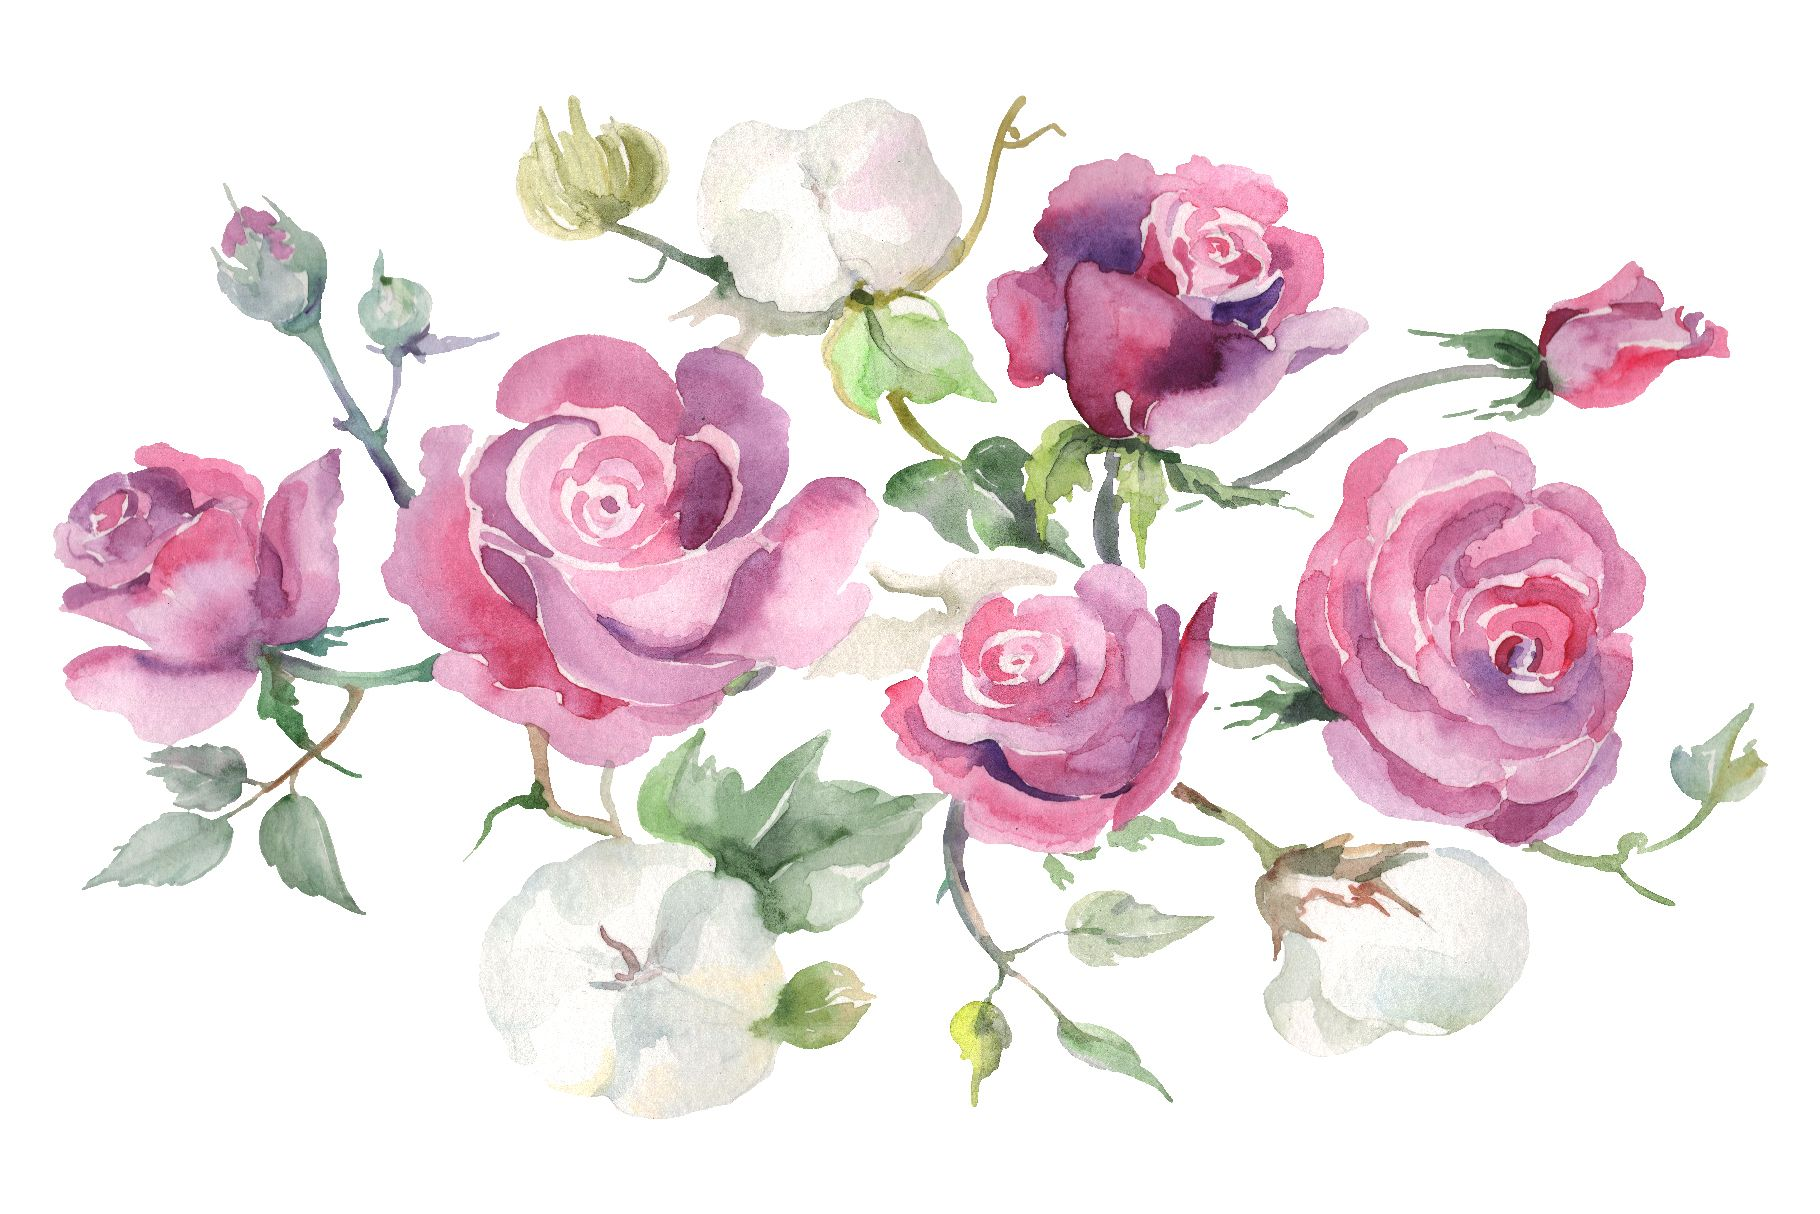 Bouquet With Pink Roses And Cotton Watercolor Png Graphic By Mystocks Creative Fabrica Watercolor Flowers Pink Roses Watercolor